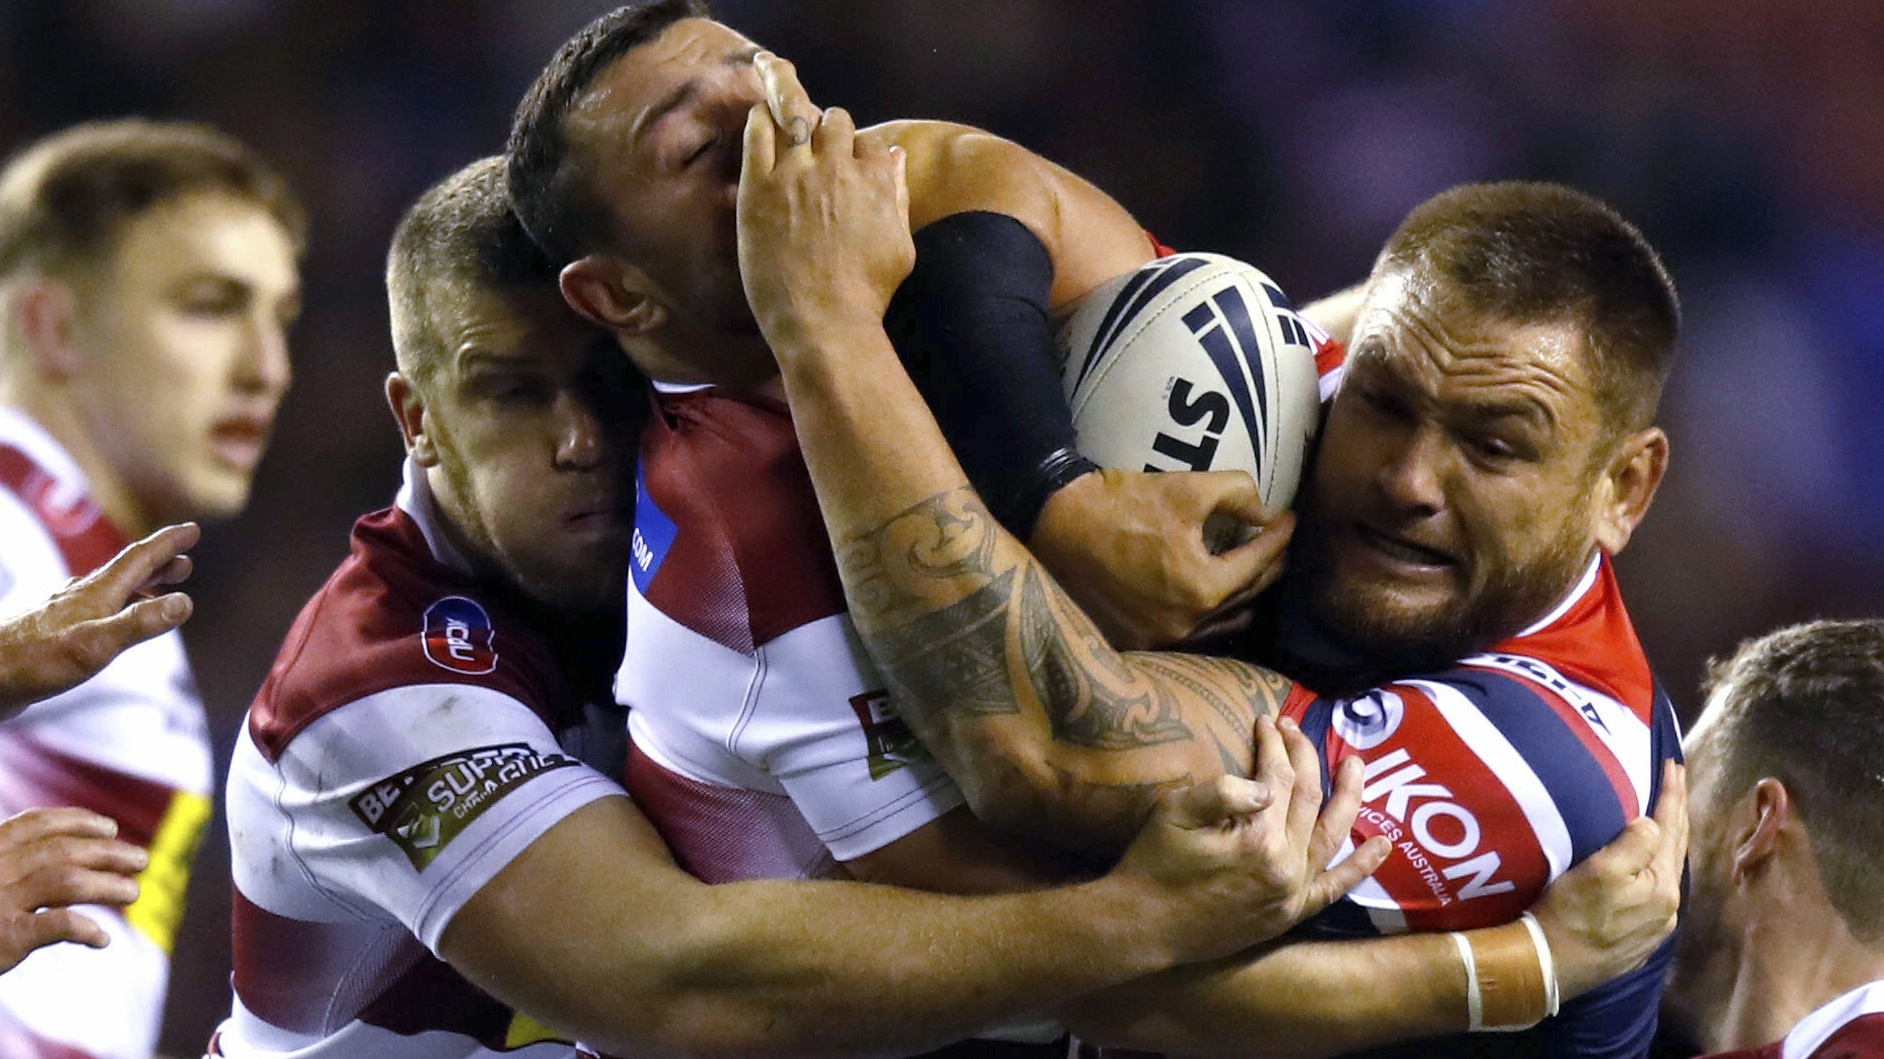 WCC Highlights: Wigan Warriors v Sydney Roosters